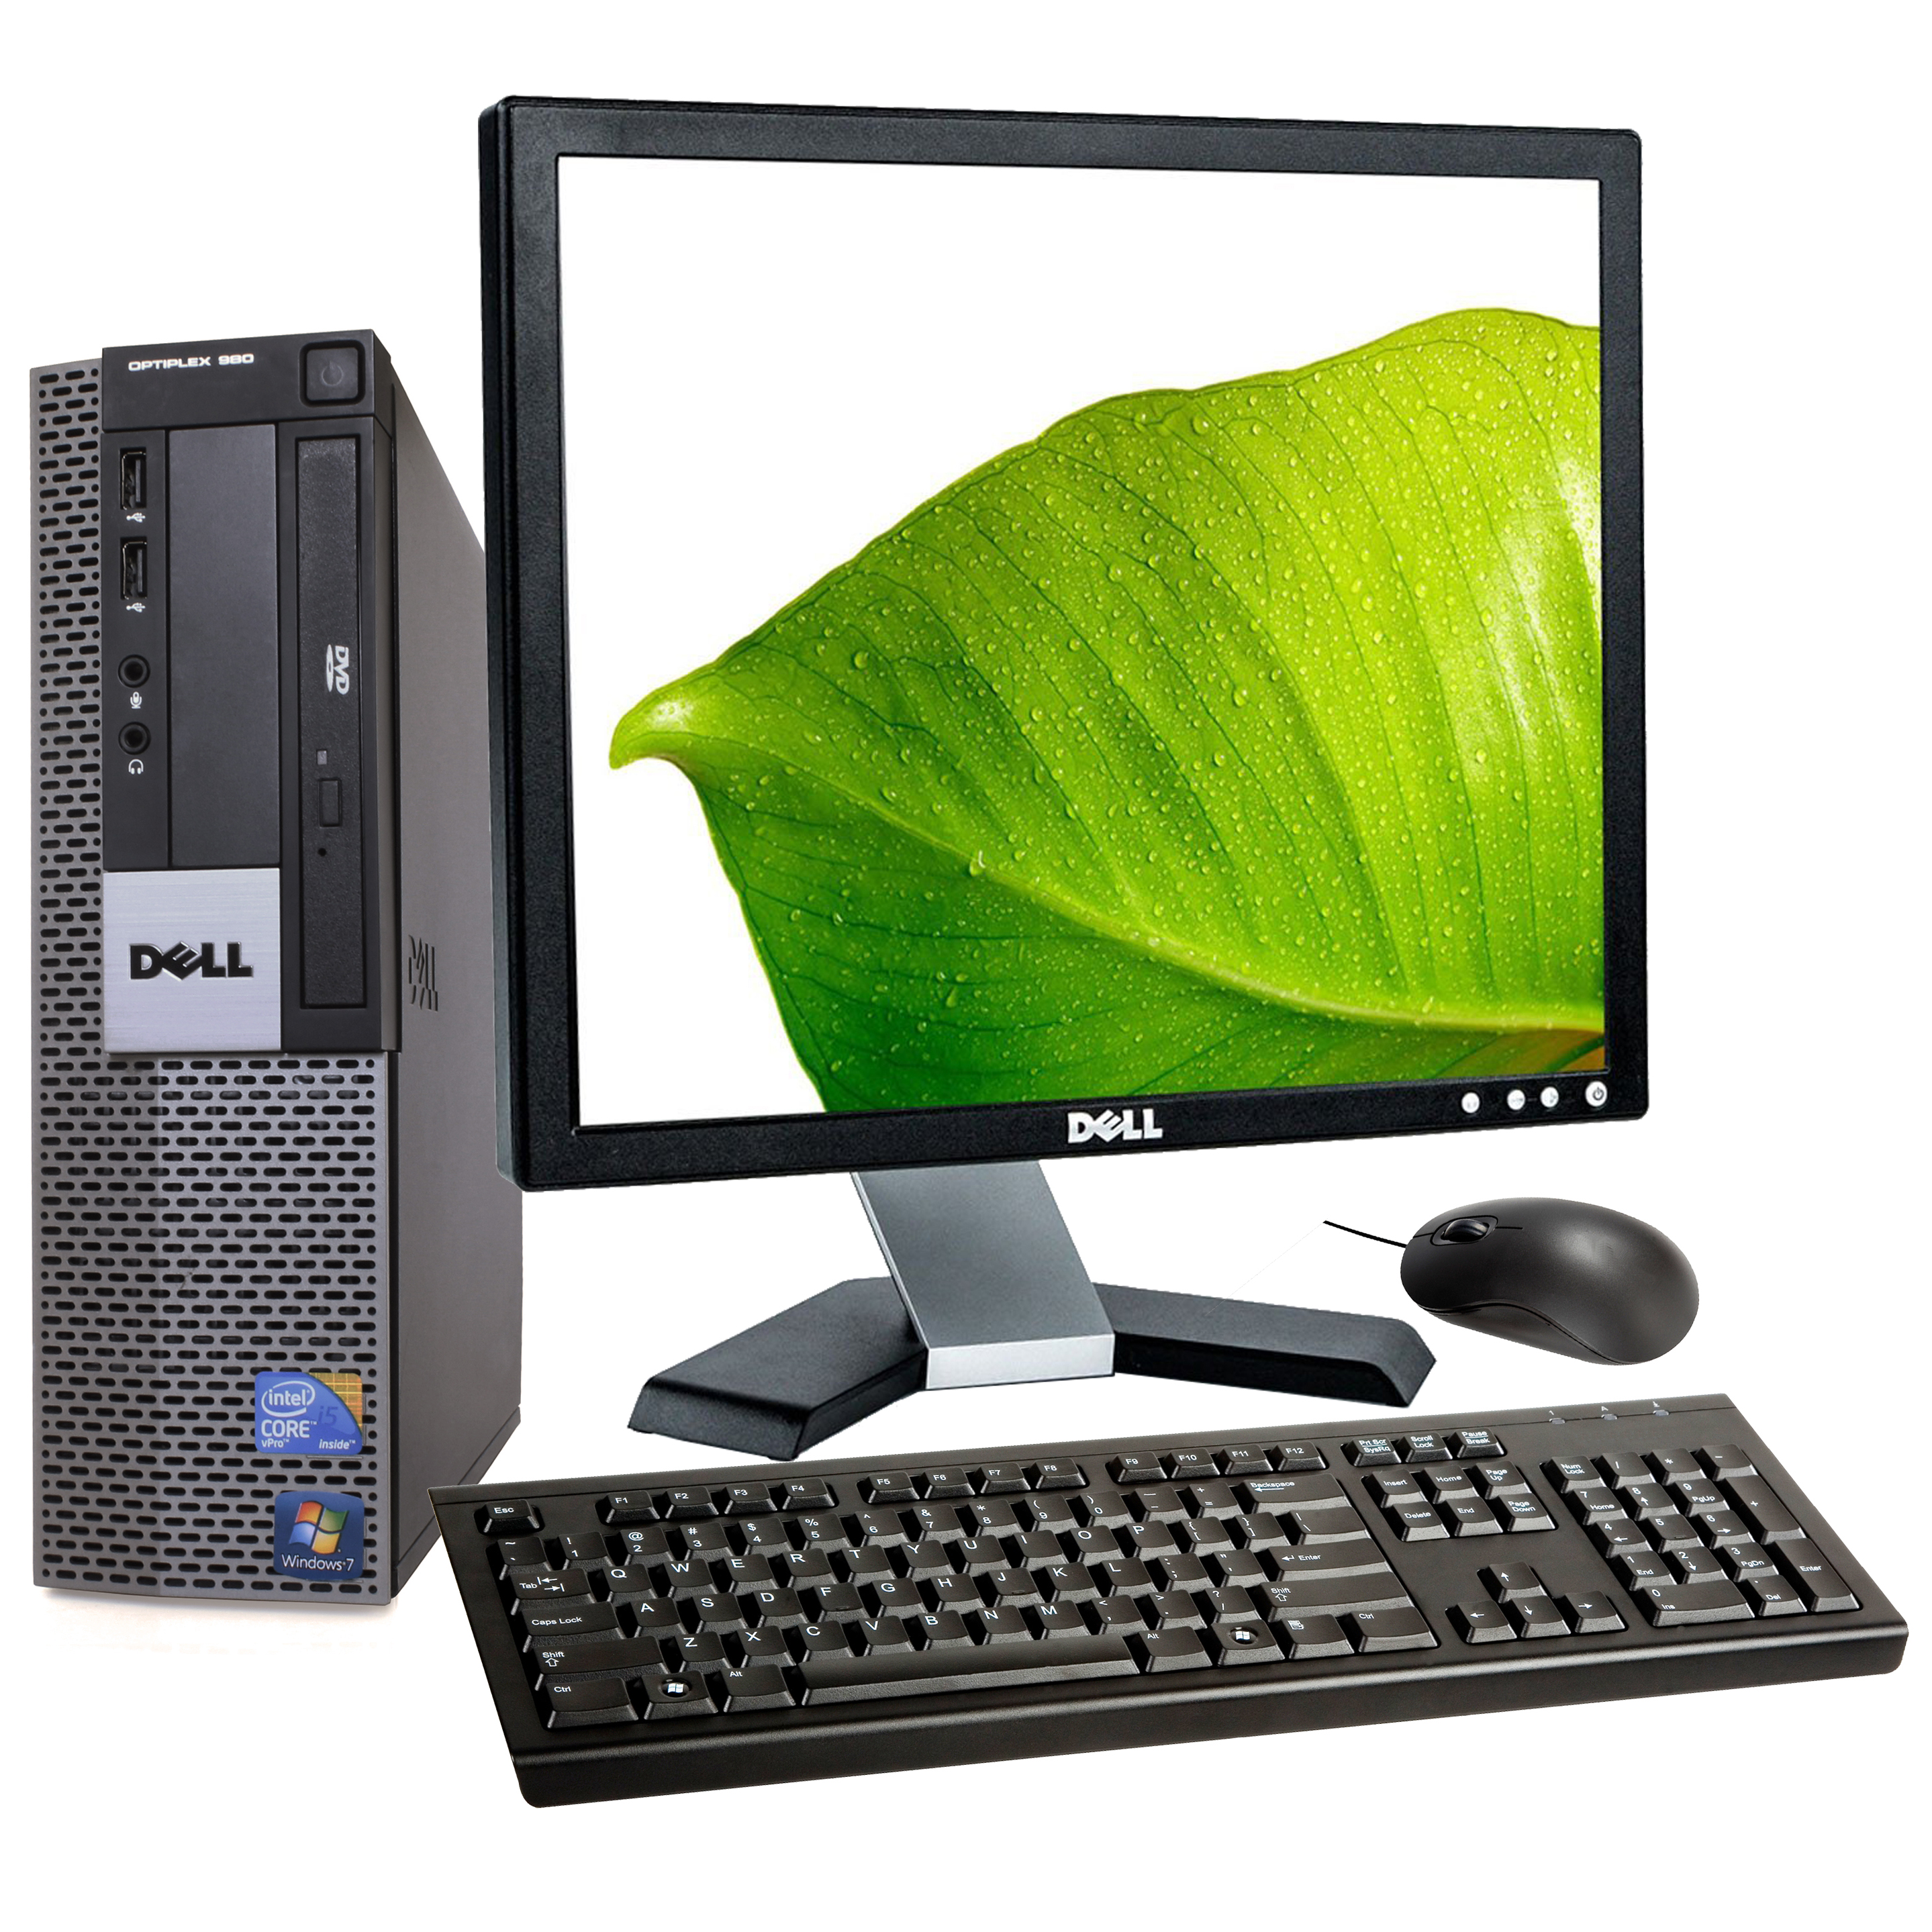 "Dell Optiplex 980 Desktop Bundle with 17"" Dell Monitor ..."